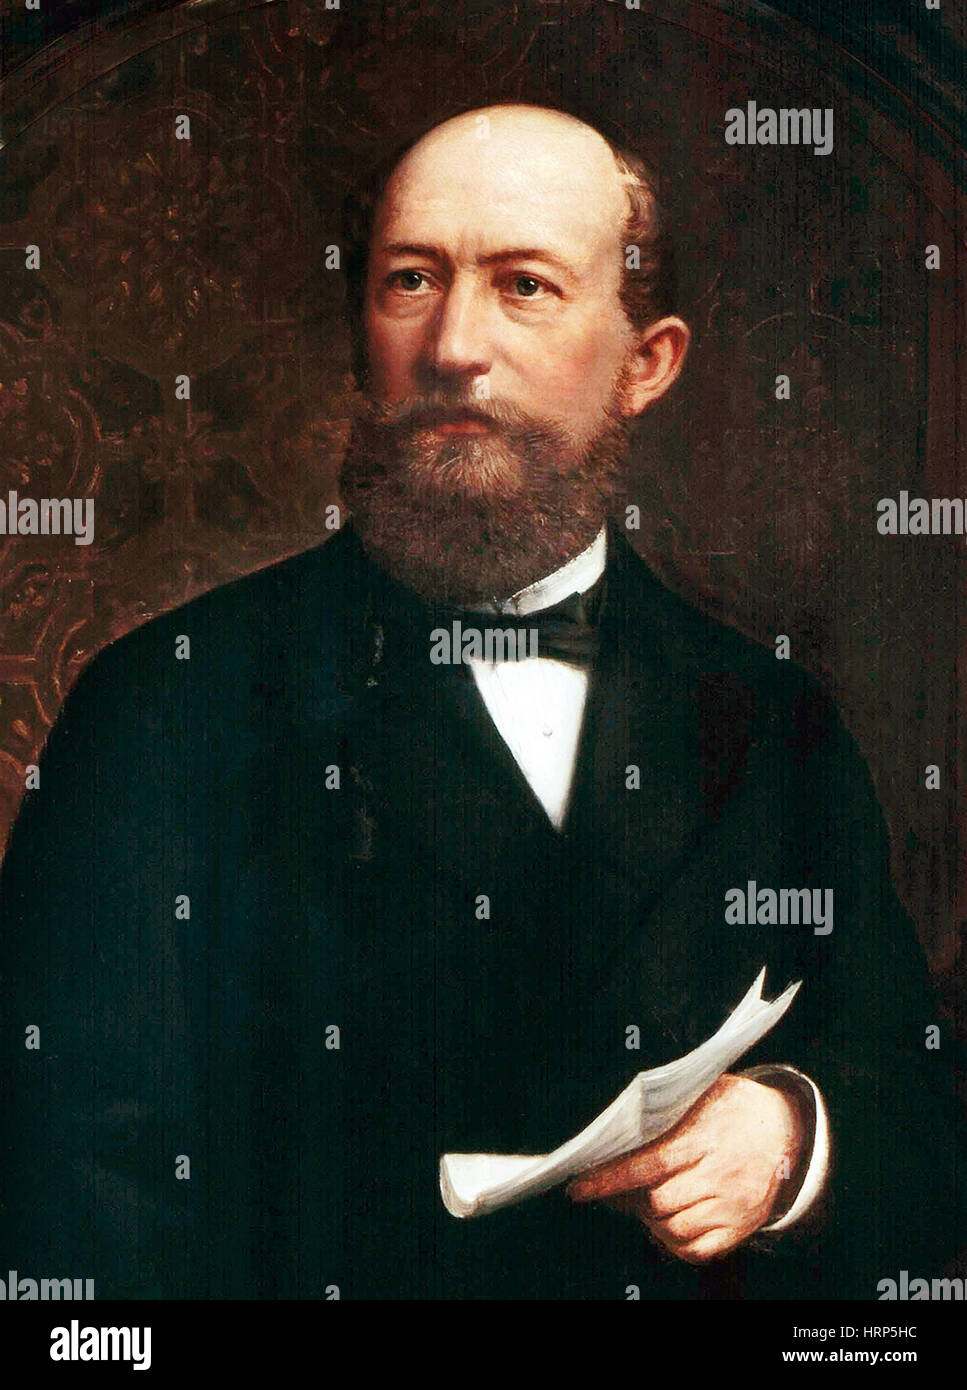 Friedrich Bayer, German Pharmaceutical Founder - Stock Image